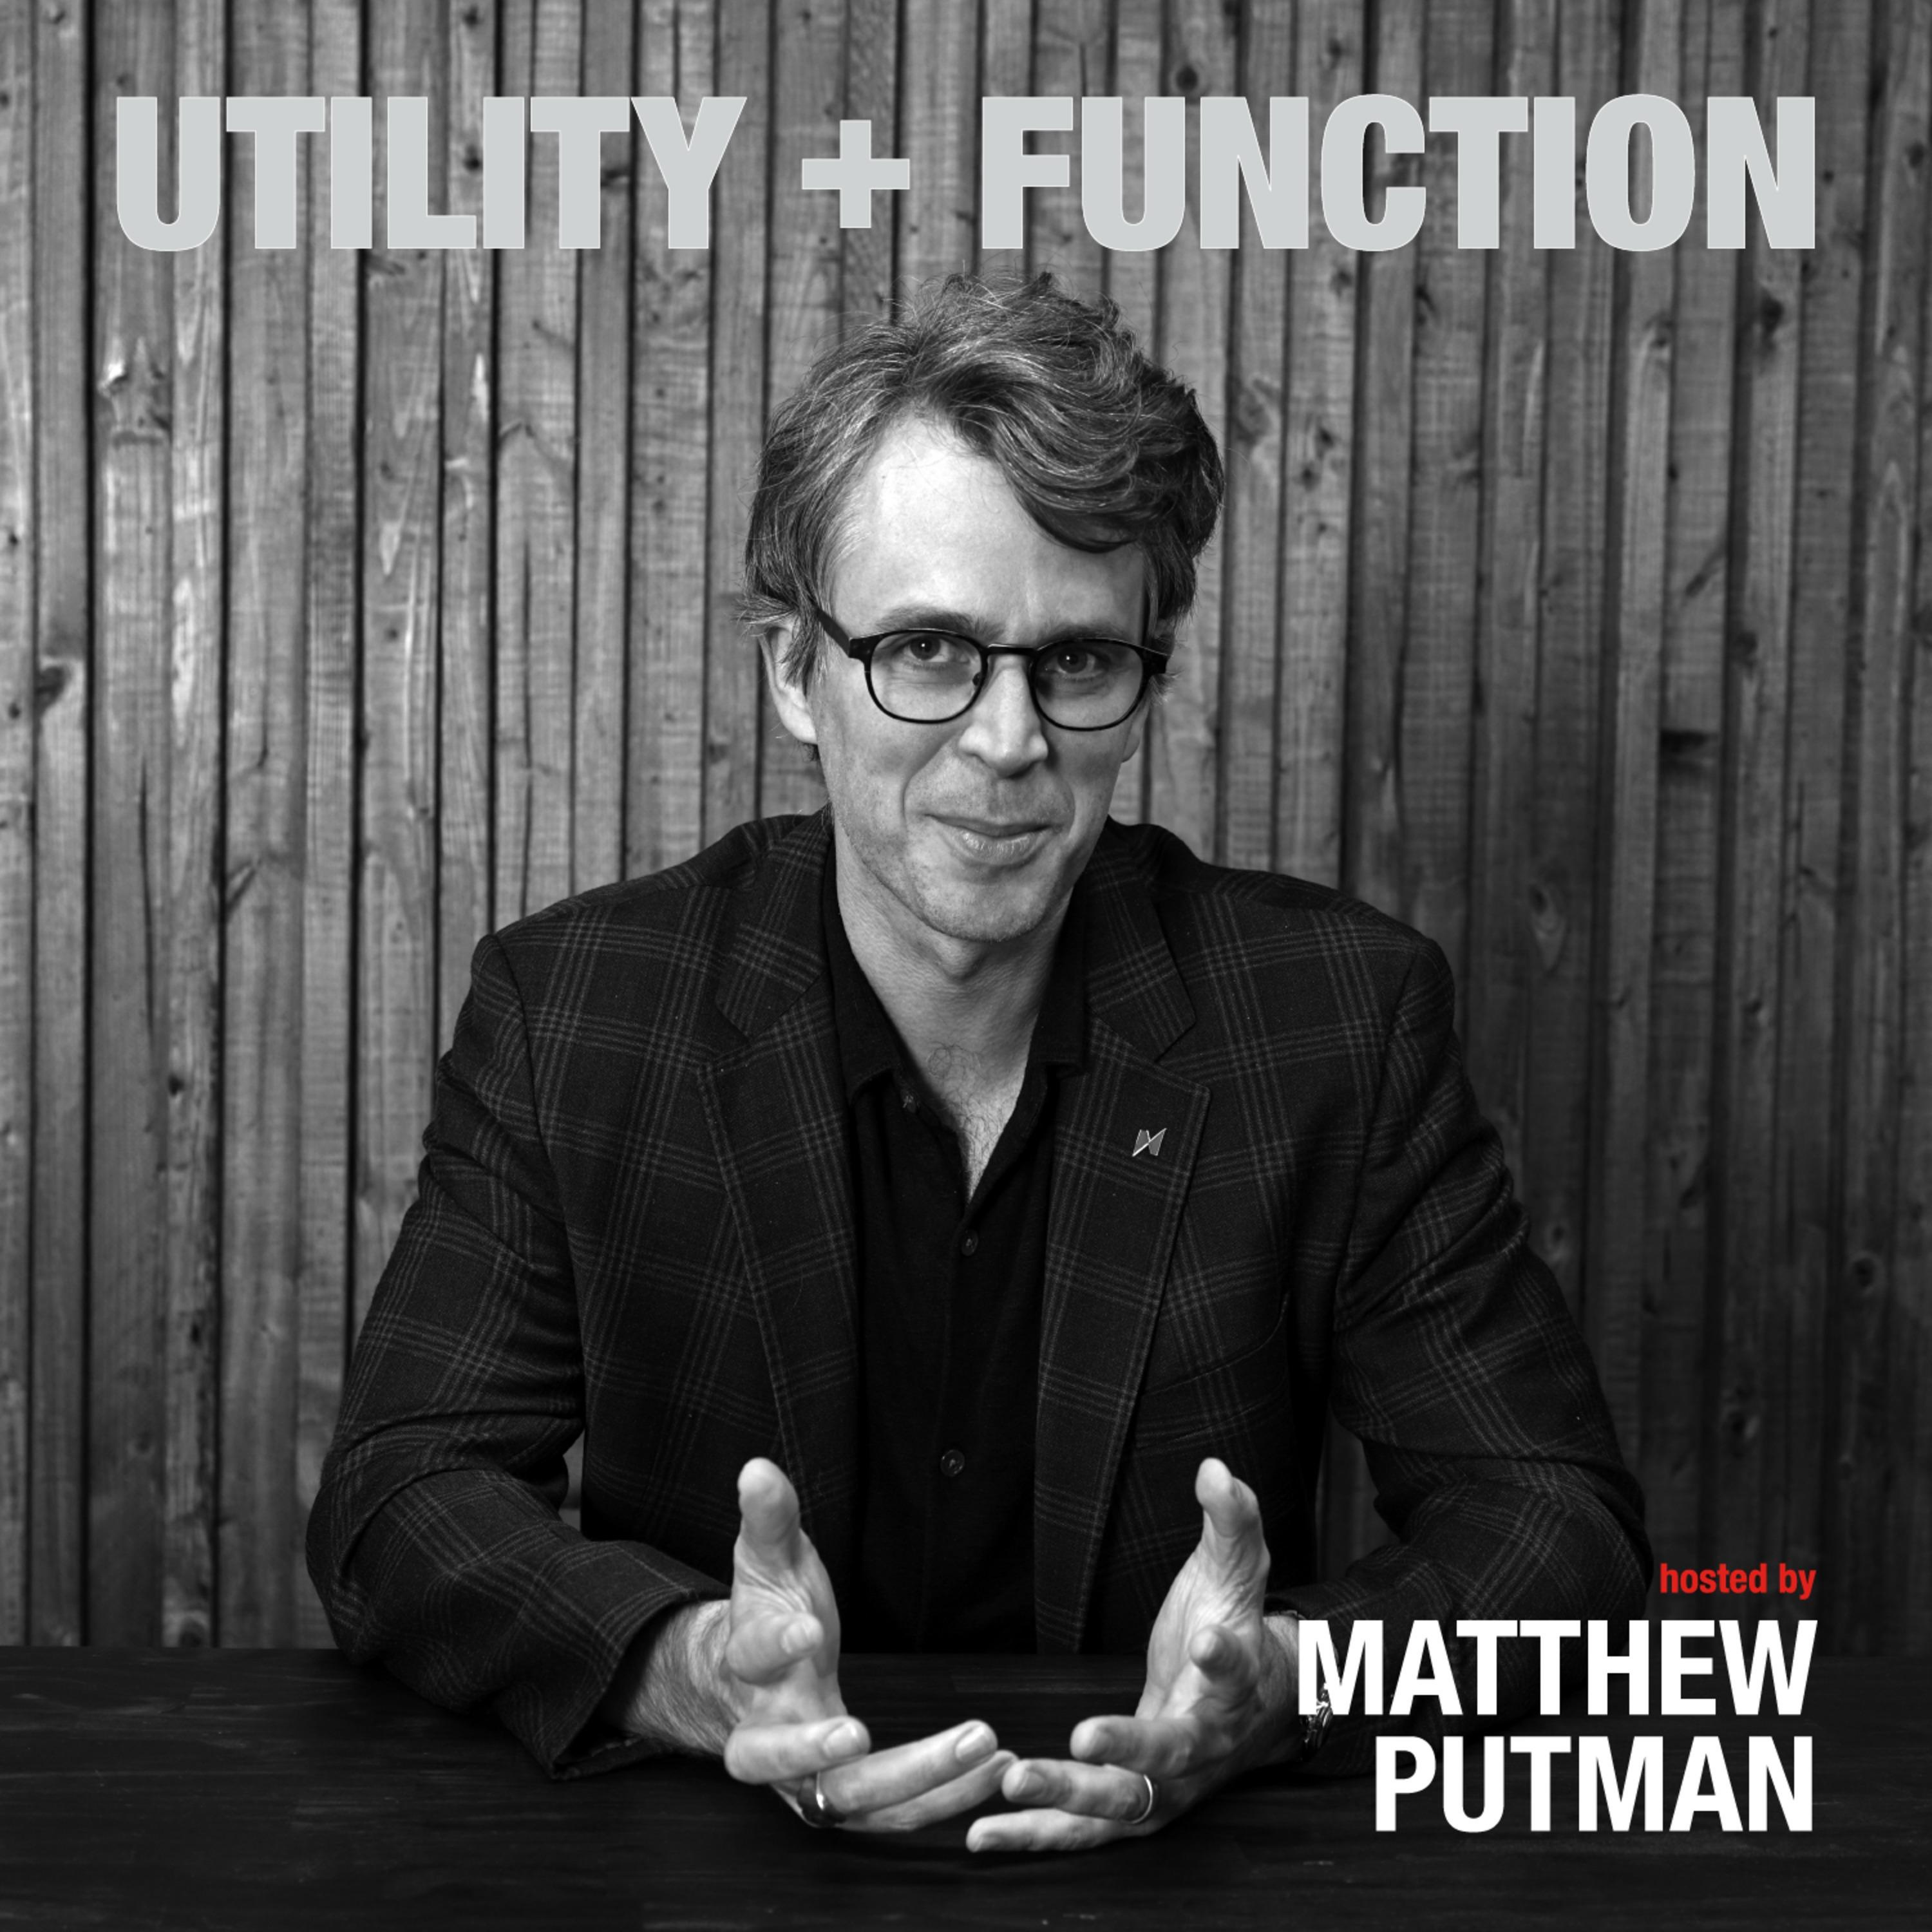 Utility + Function